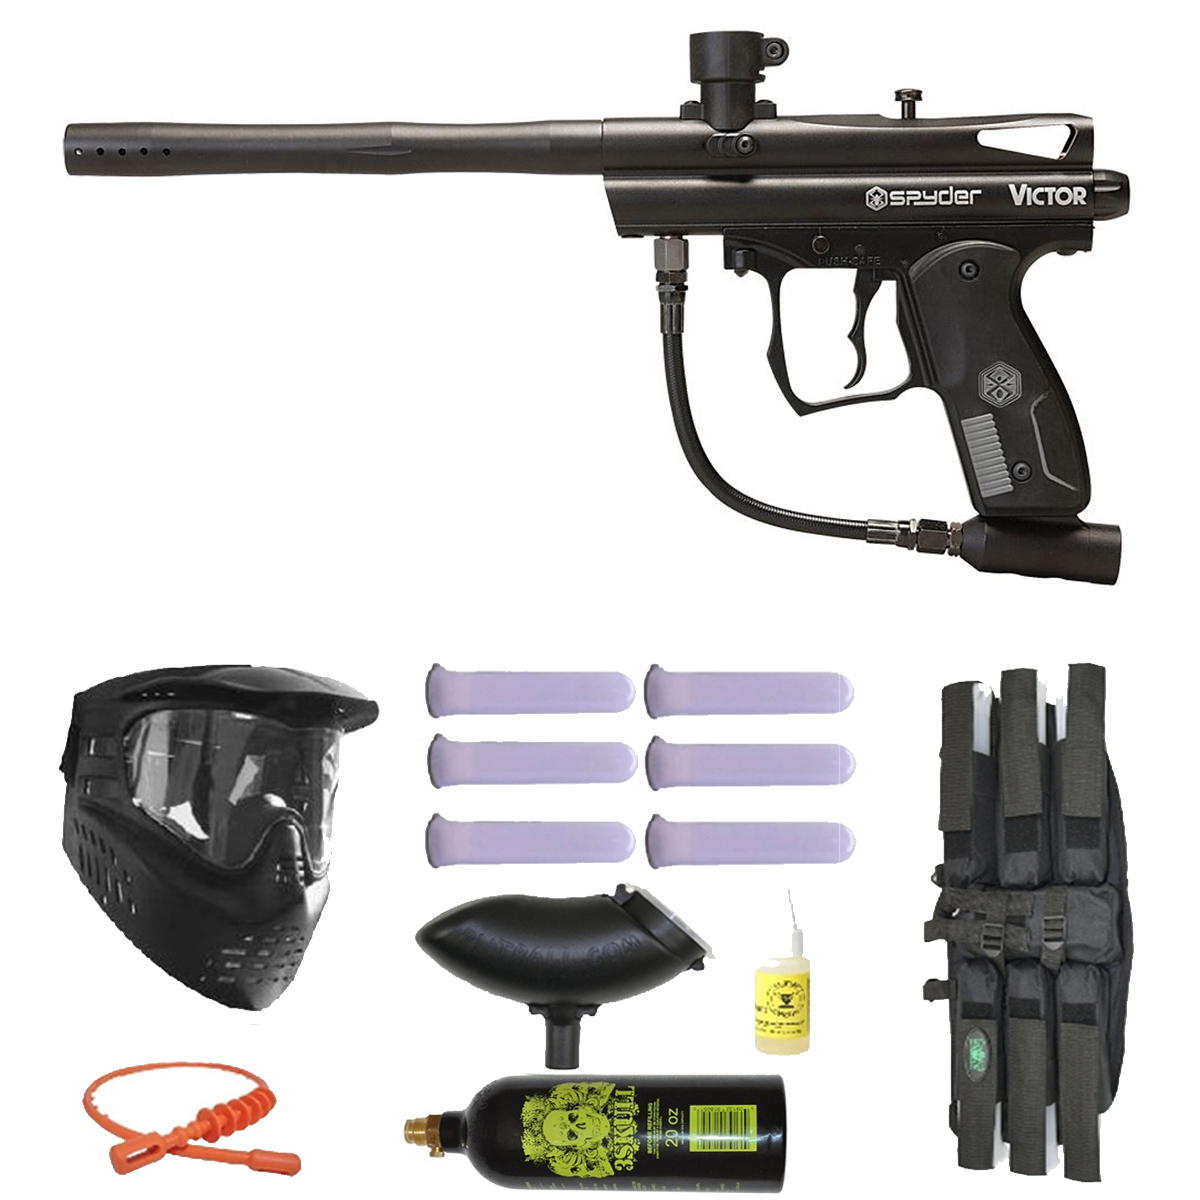 Spyder Victor Paintball Marker Gun 3Skull Mega Set Black by